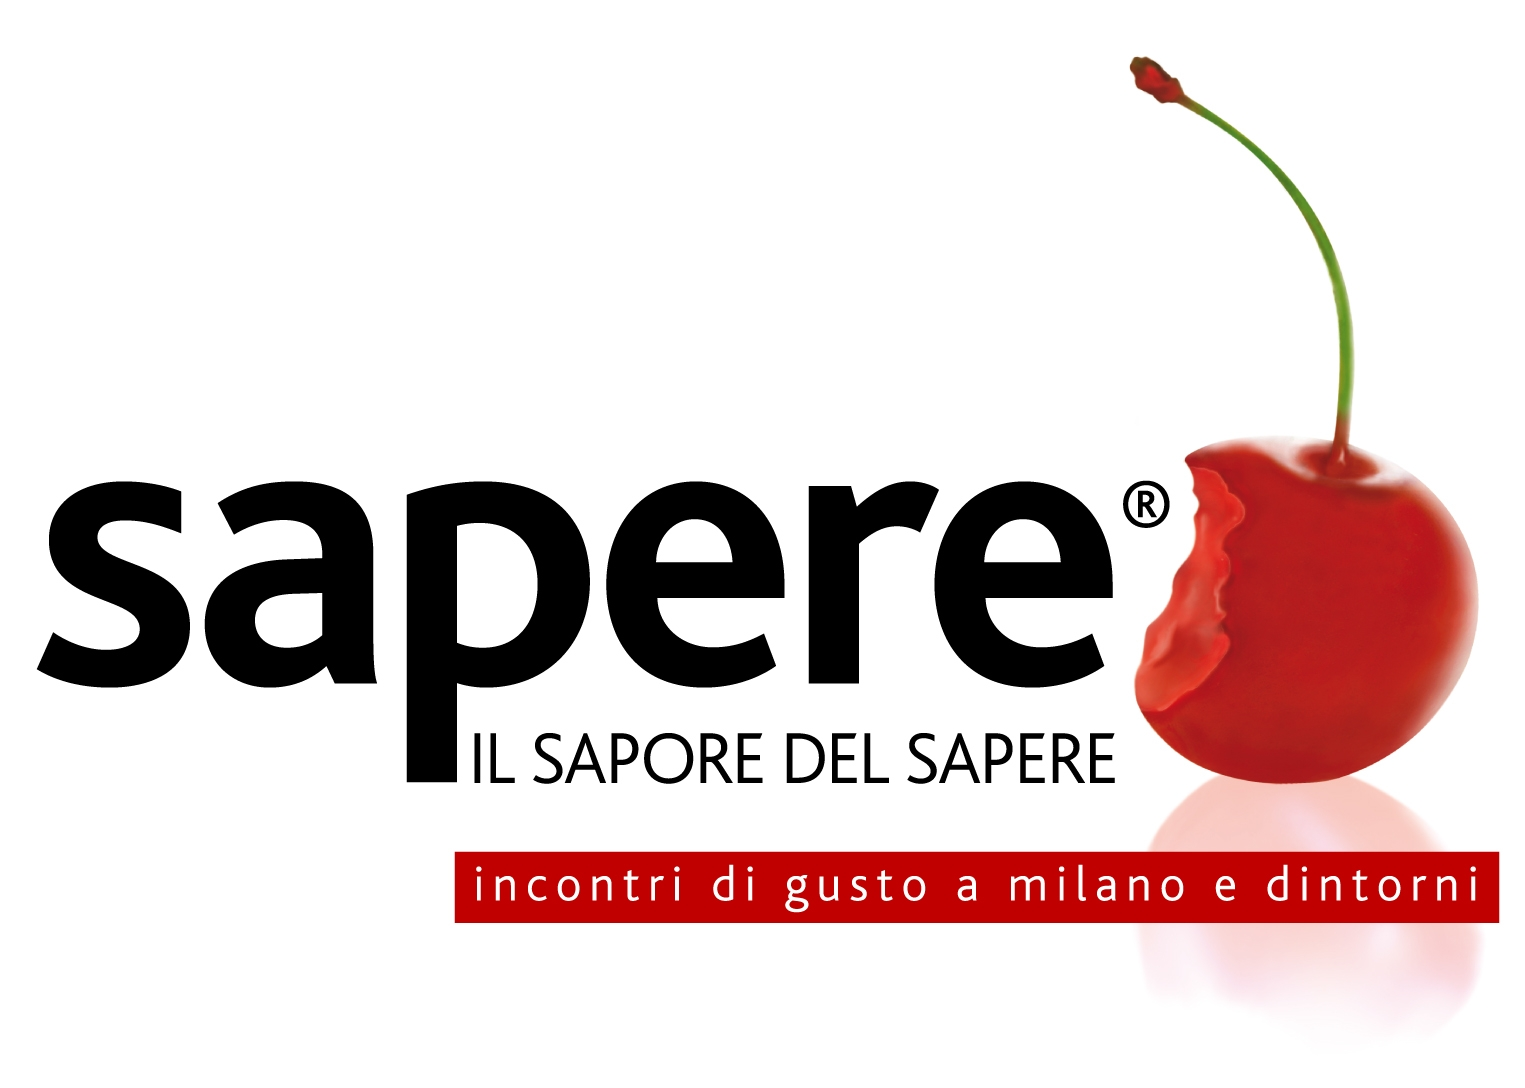 2011151633__saporidelsapere